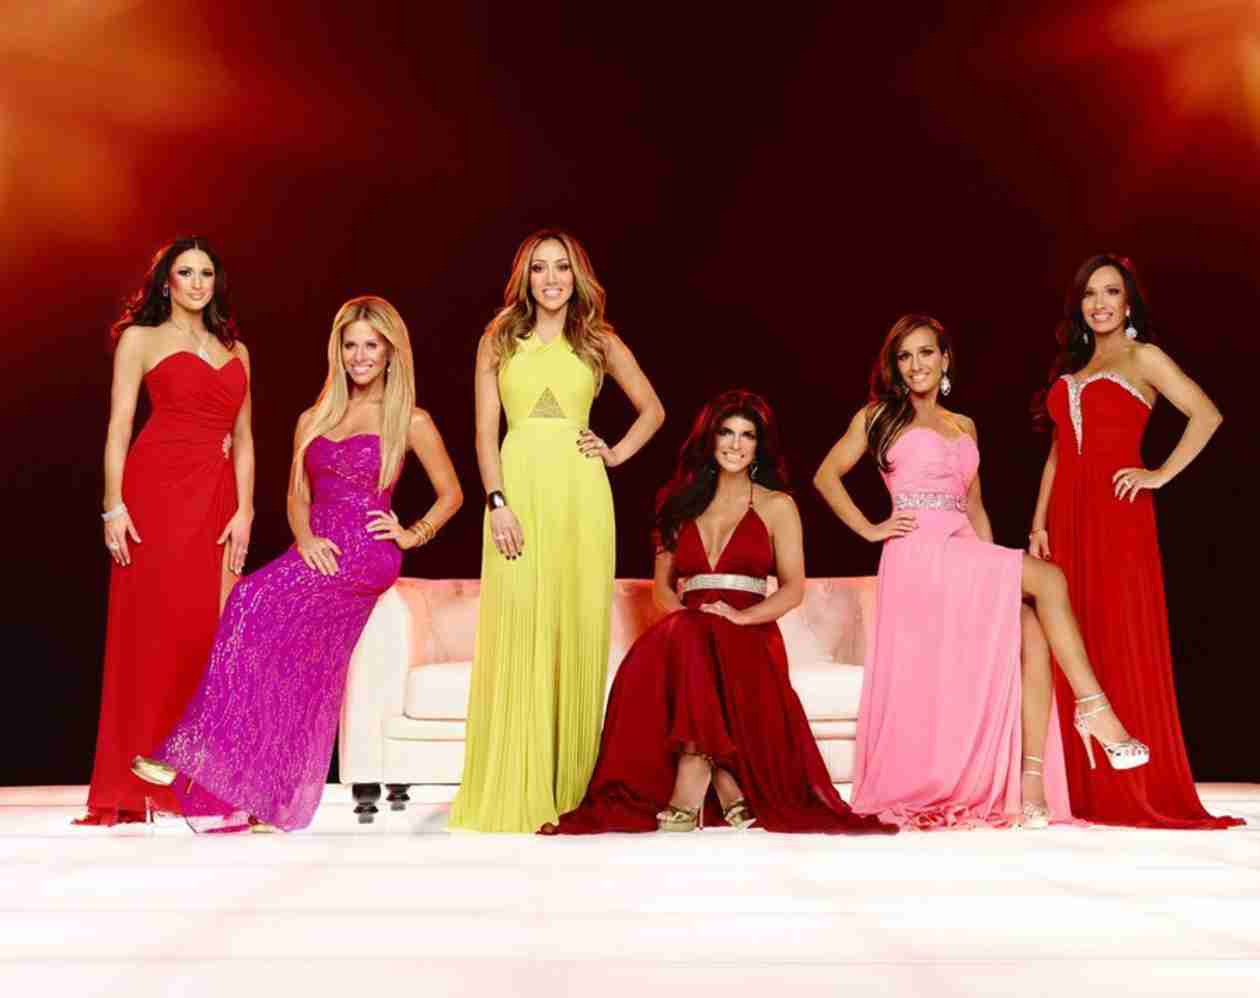 Real Housewives of New Jersey Season 6 Cast Photo Revealed!